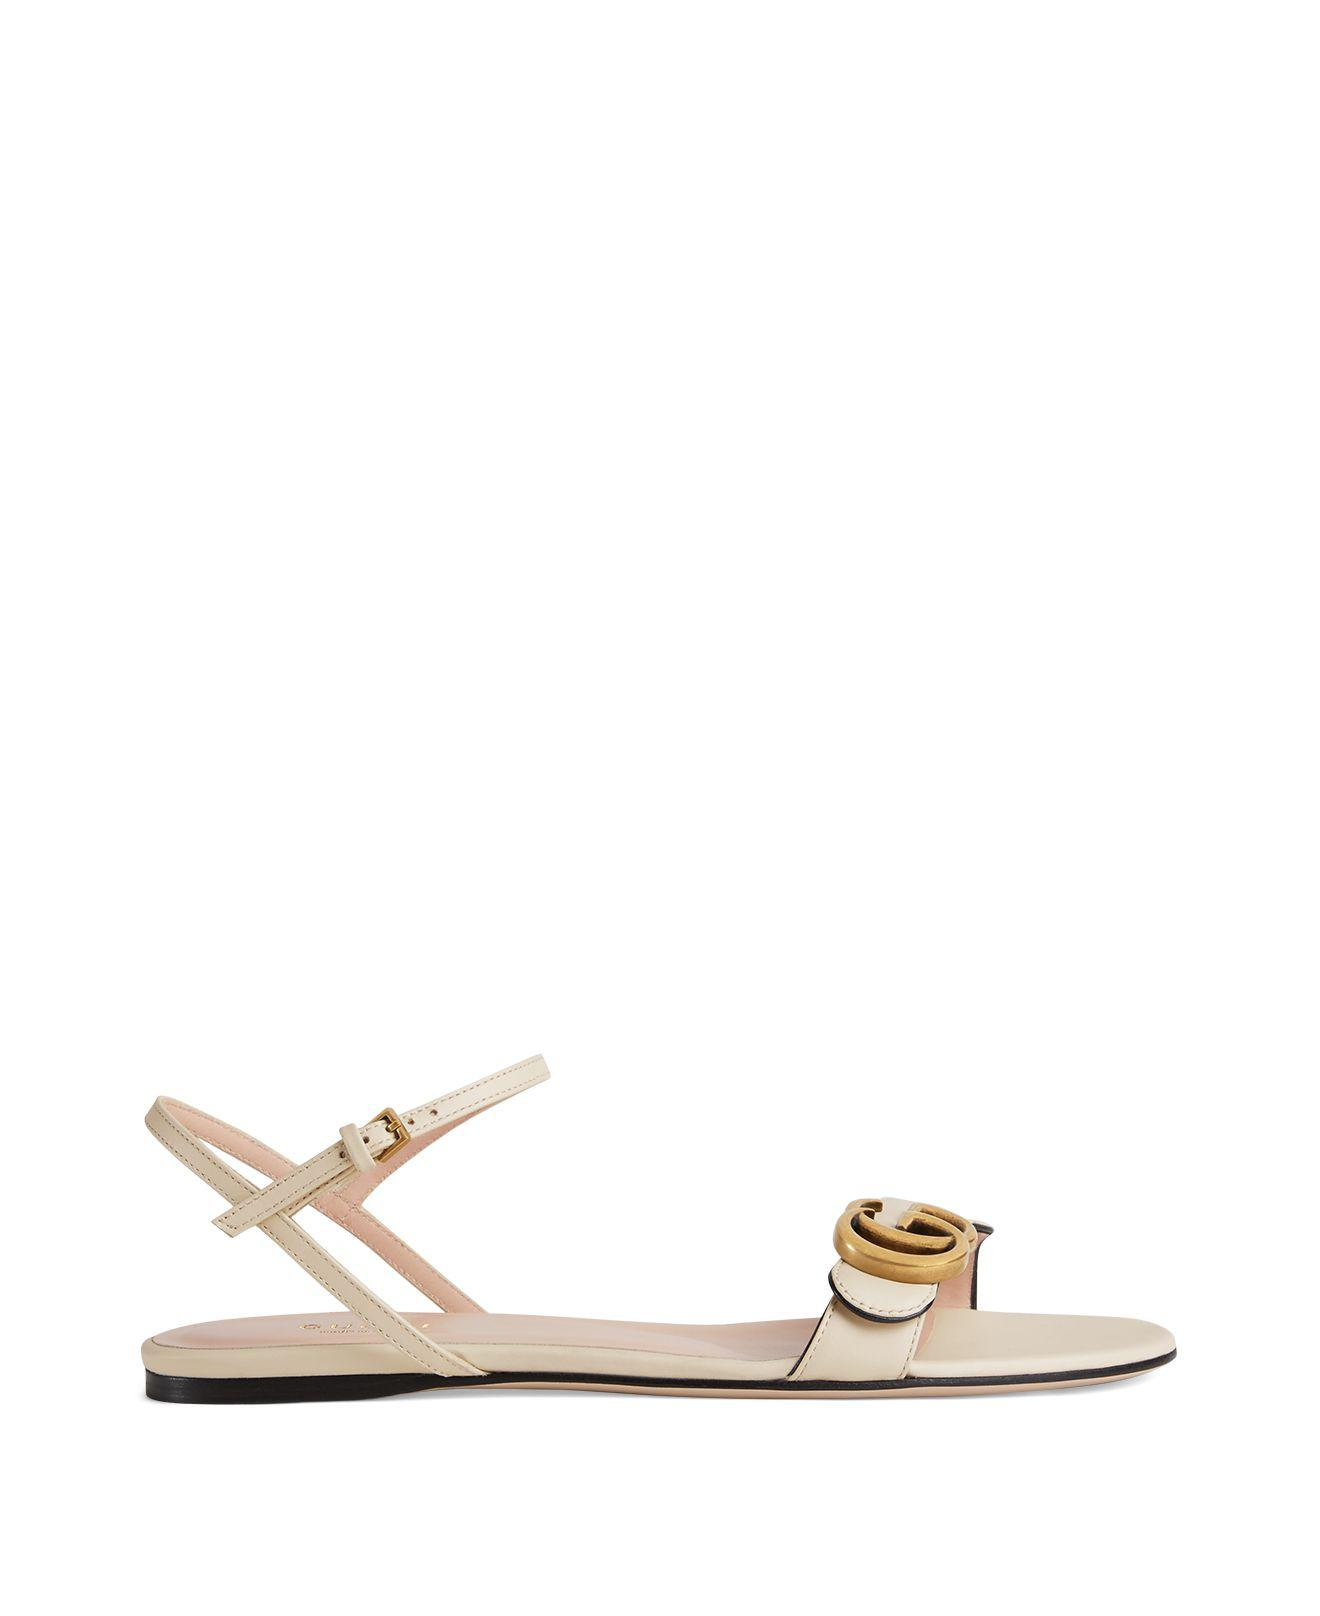 49a5fcf7f4b7 Lyst - Gucci Women s Marmont Leather Double G Sandals in White